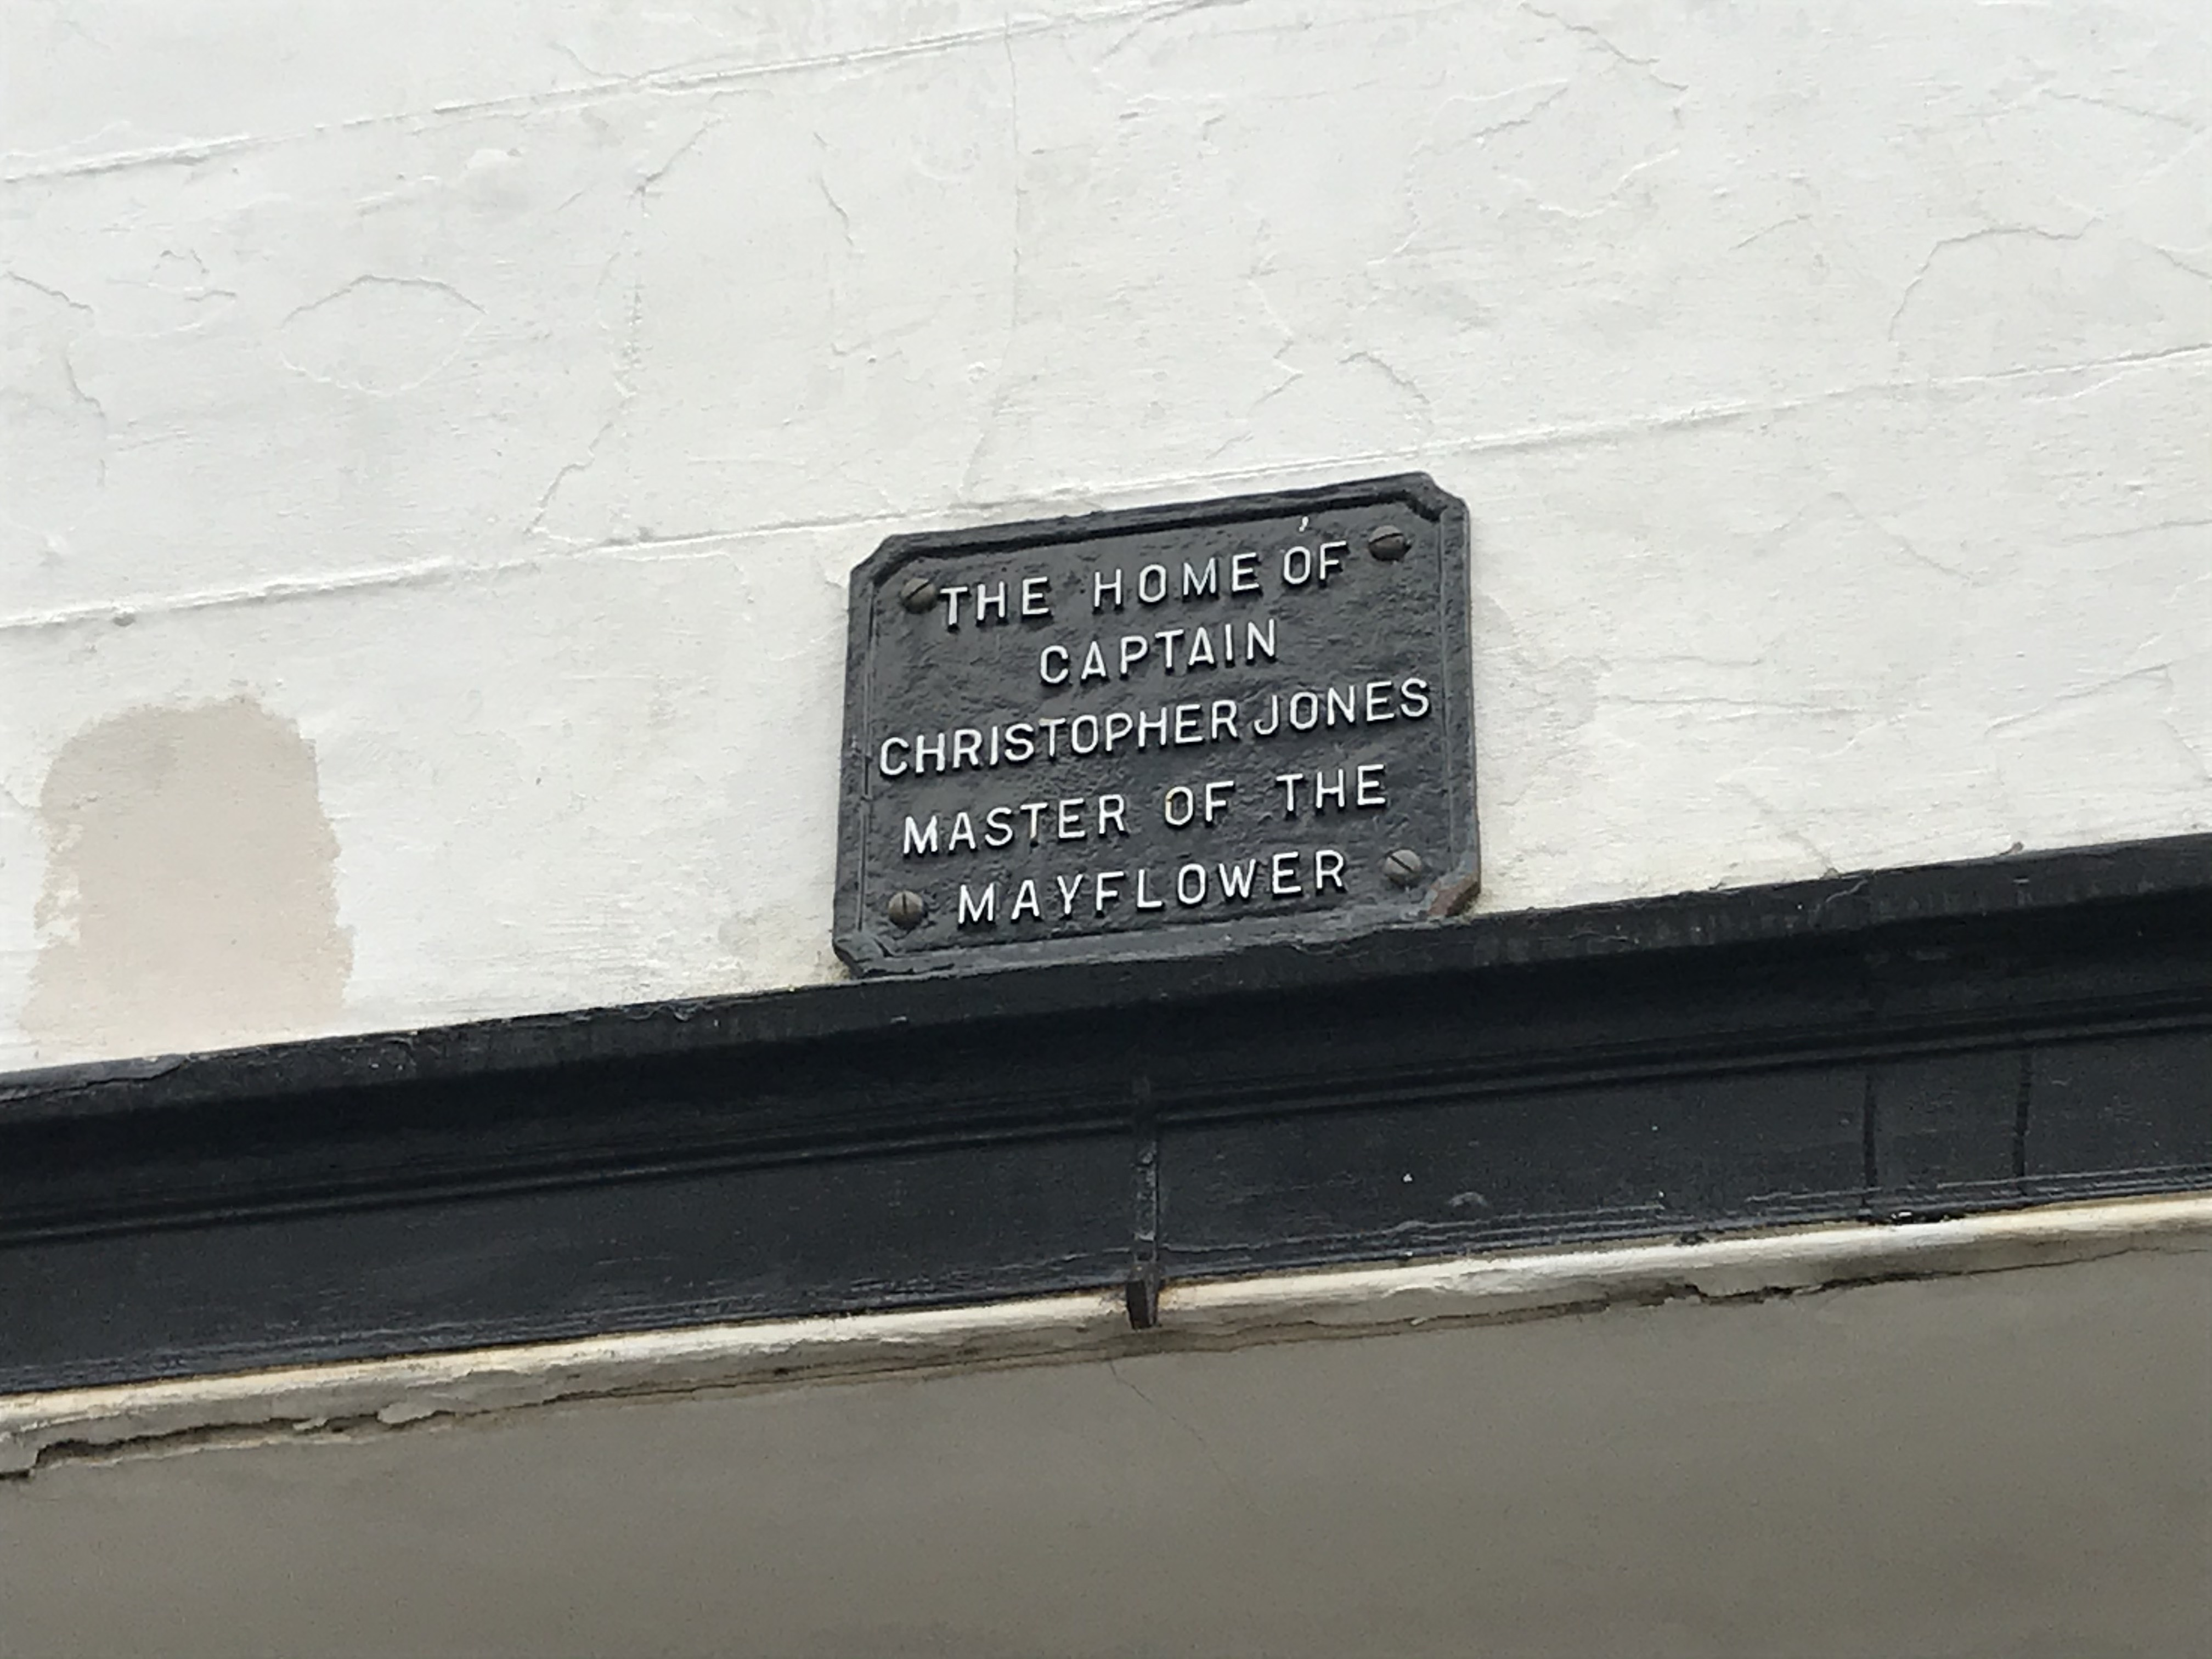 The plaque outside the house where Mayflower captain Christopher Jones once lived